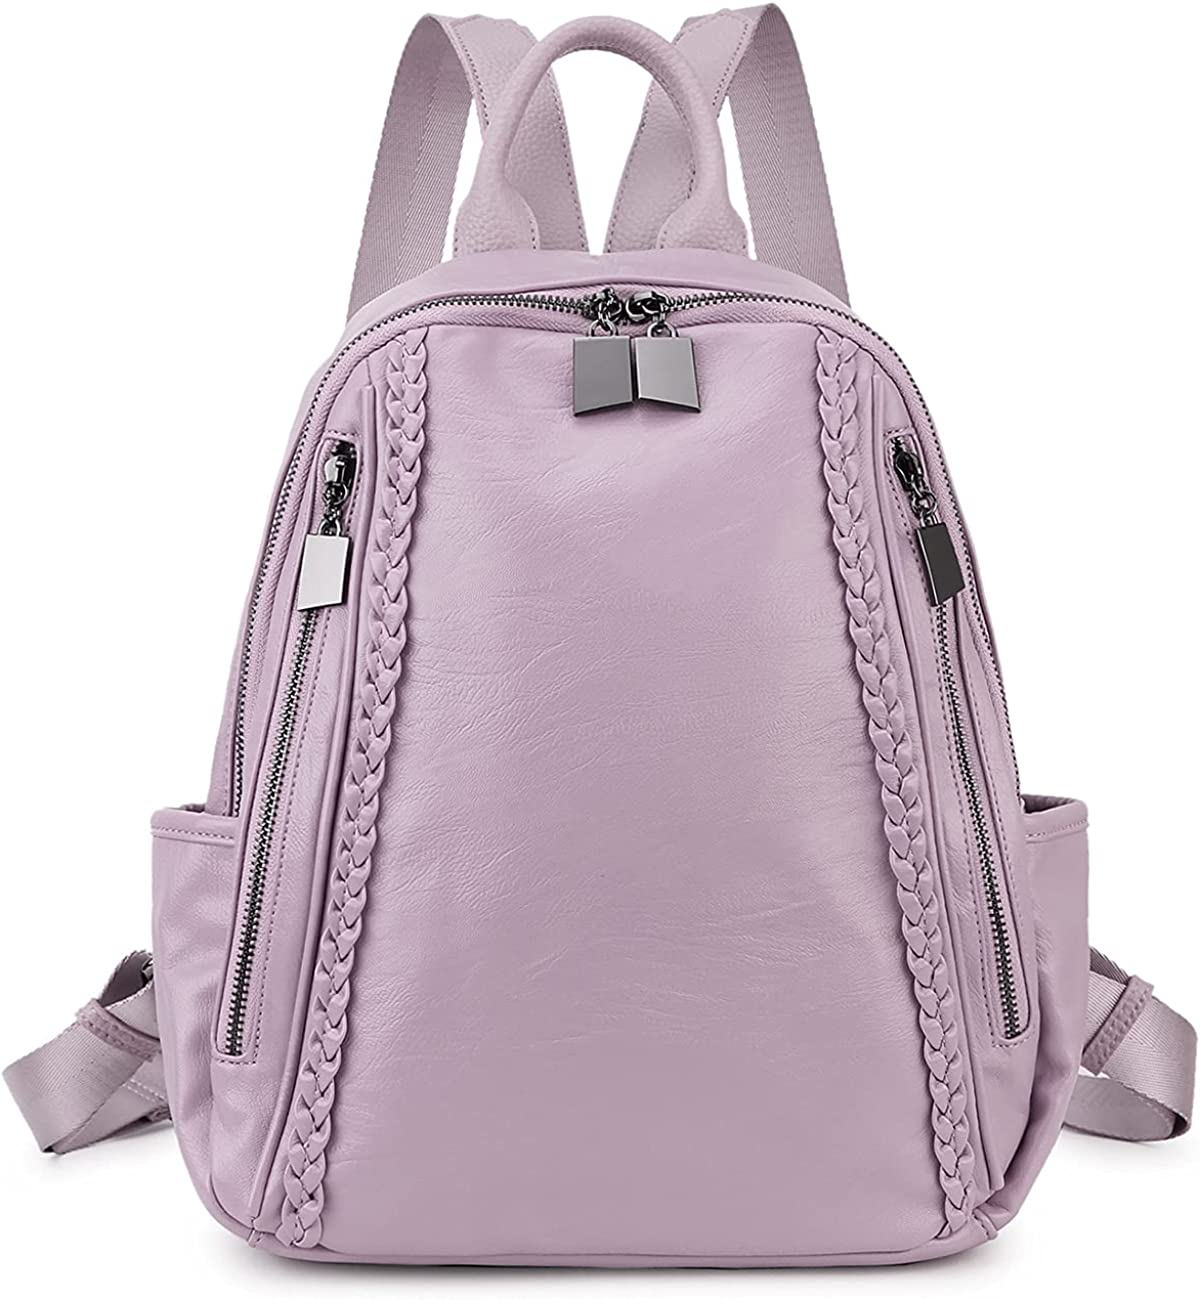 Women Backpack Purse RAVUO Fashion PU for Max 64% OFF Bag Shoulder L Max 57% OFF Leather